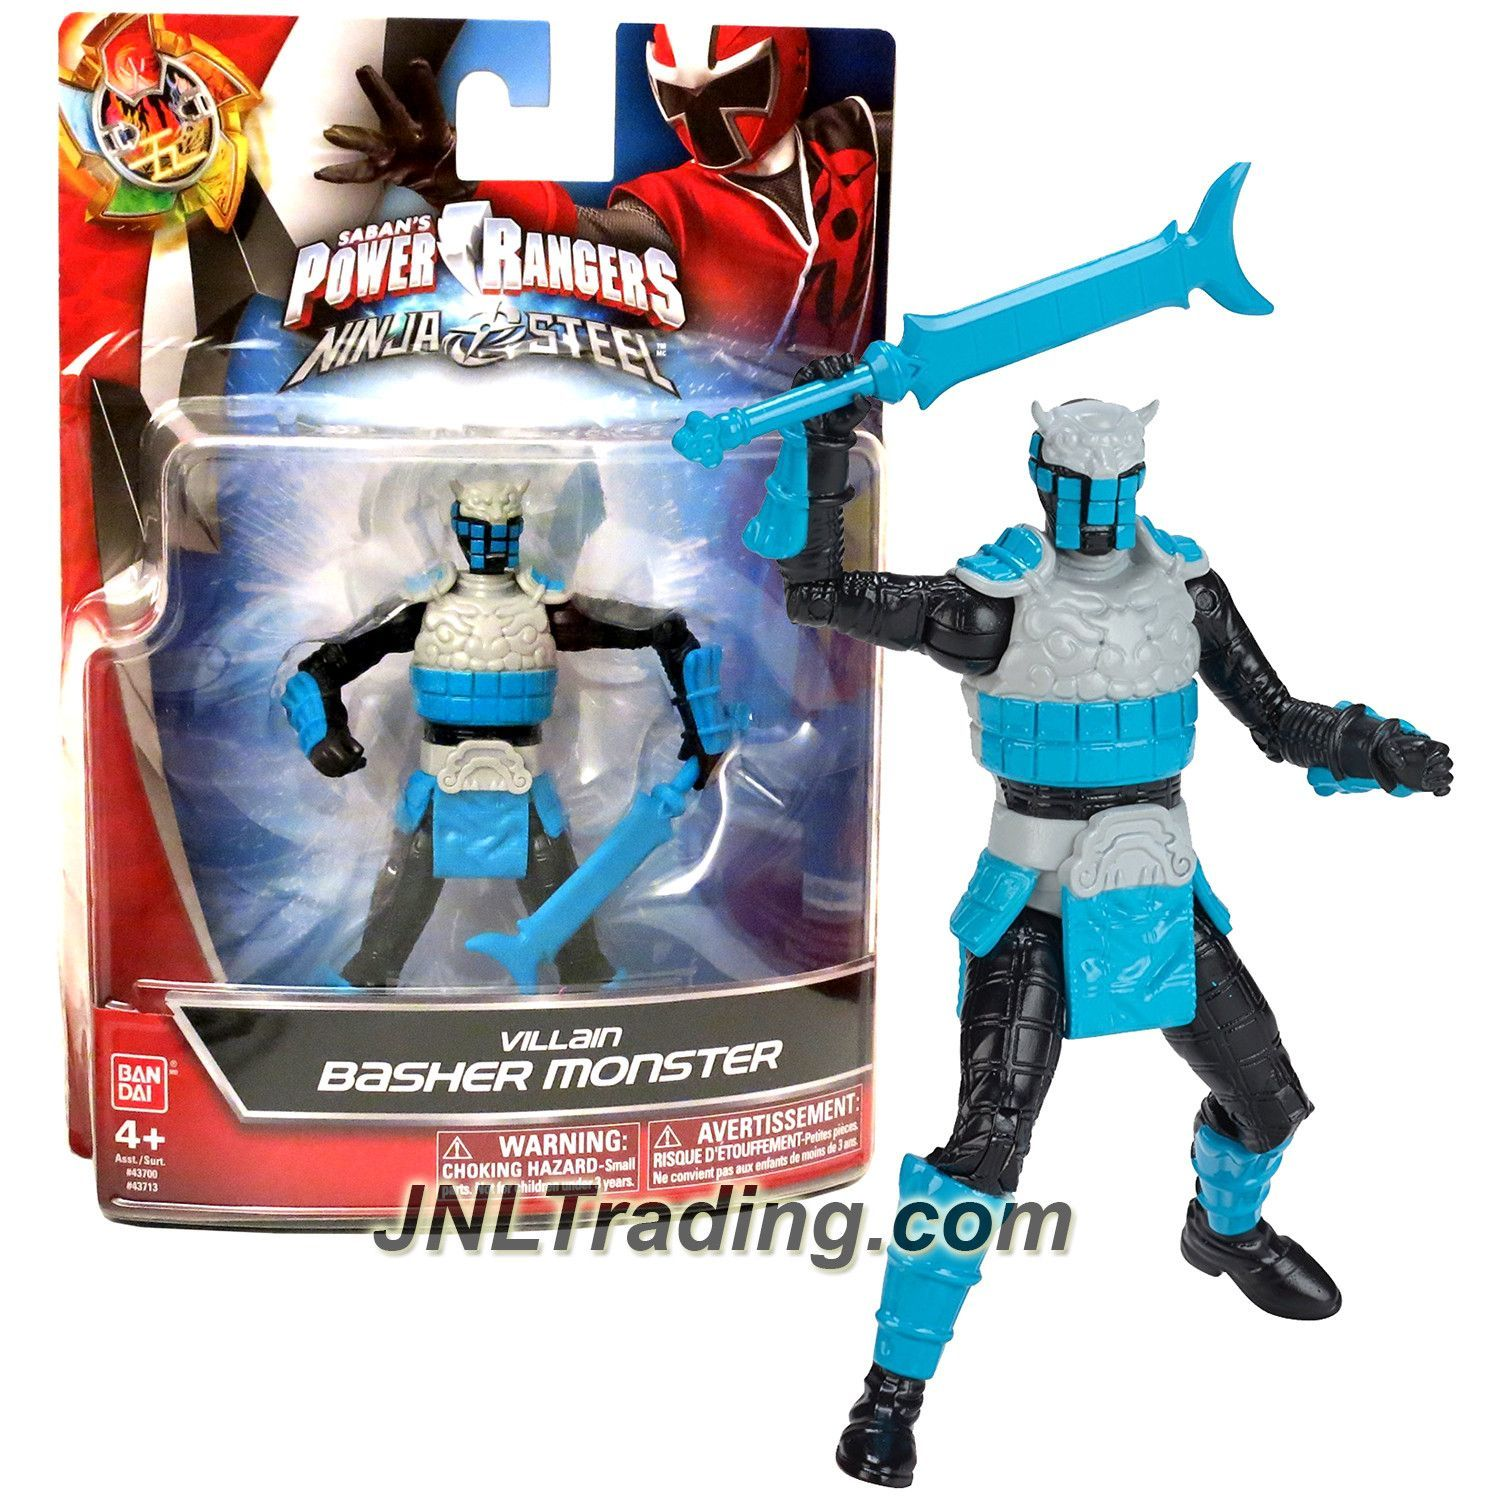 Sabans Power Rangers Movie Then and Now Blue Ranger Action Figure Set 5 Inches Bandai America